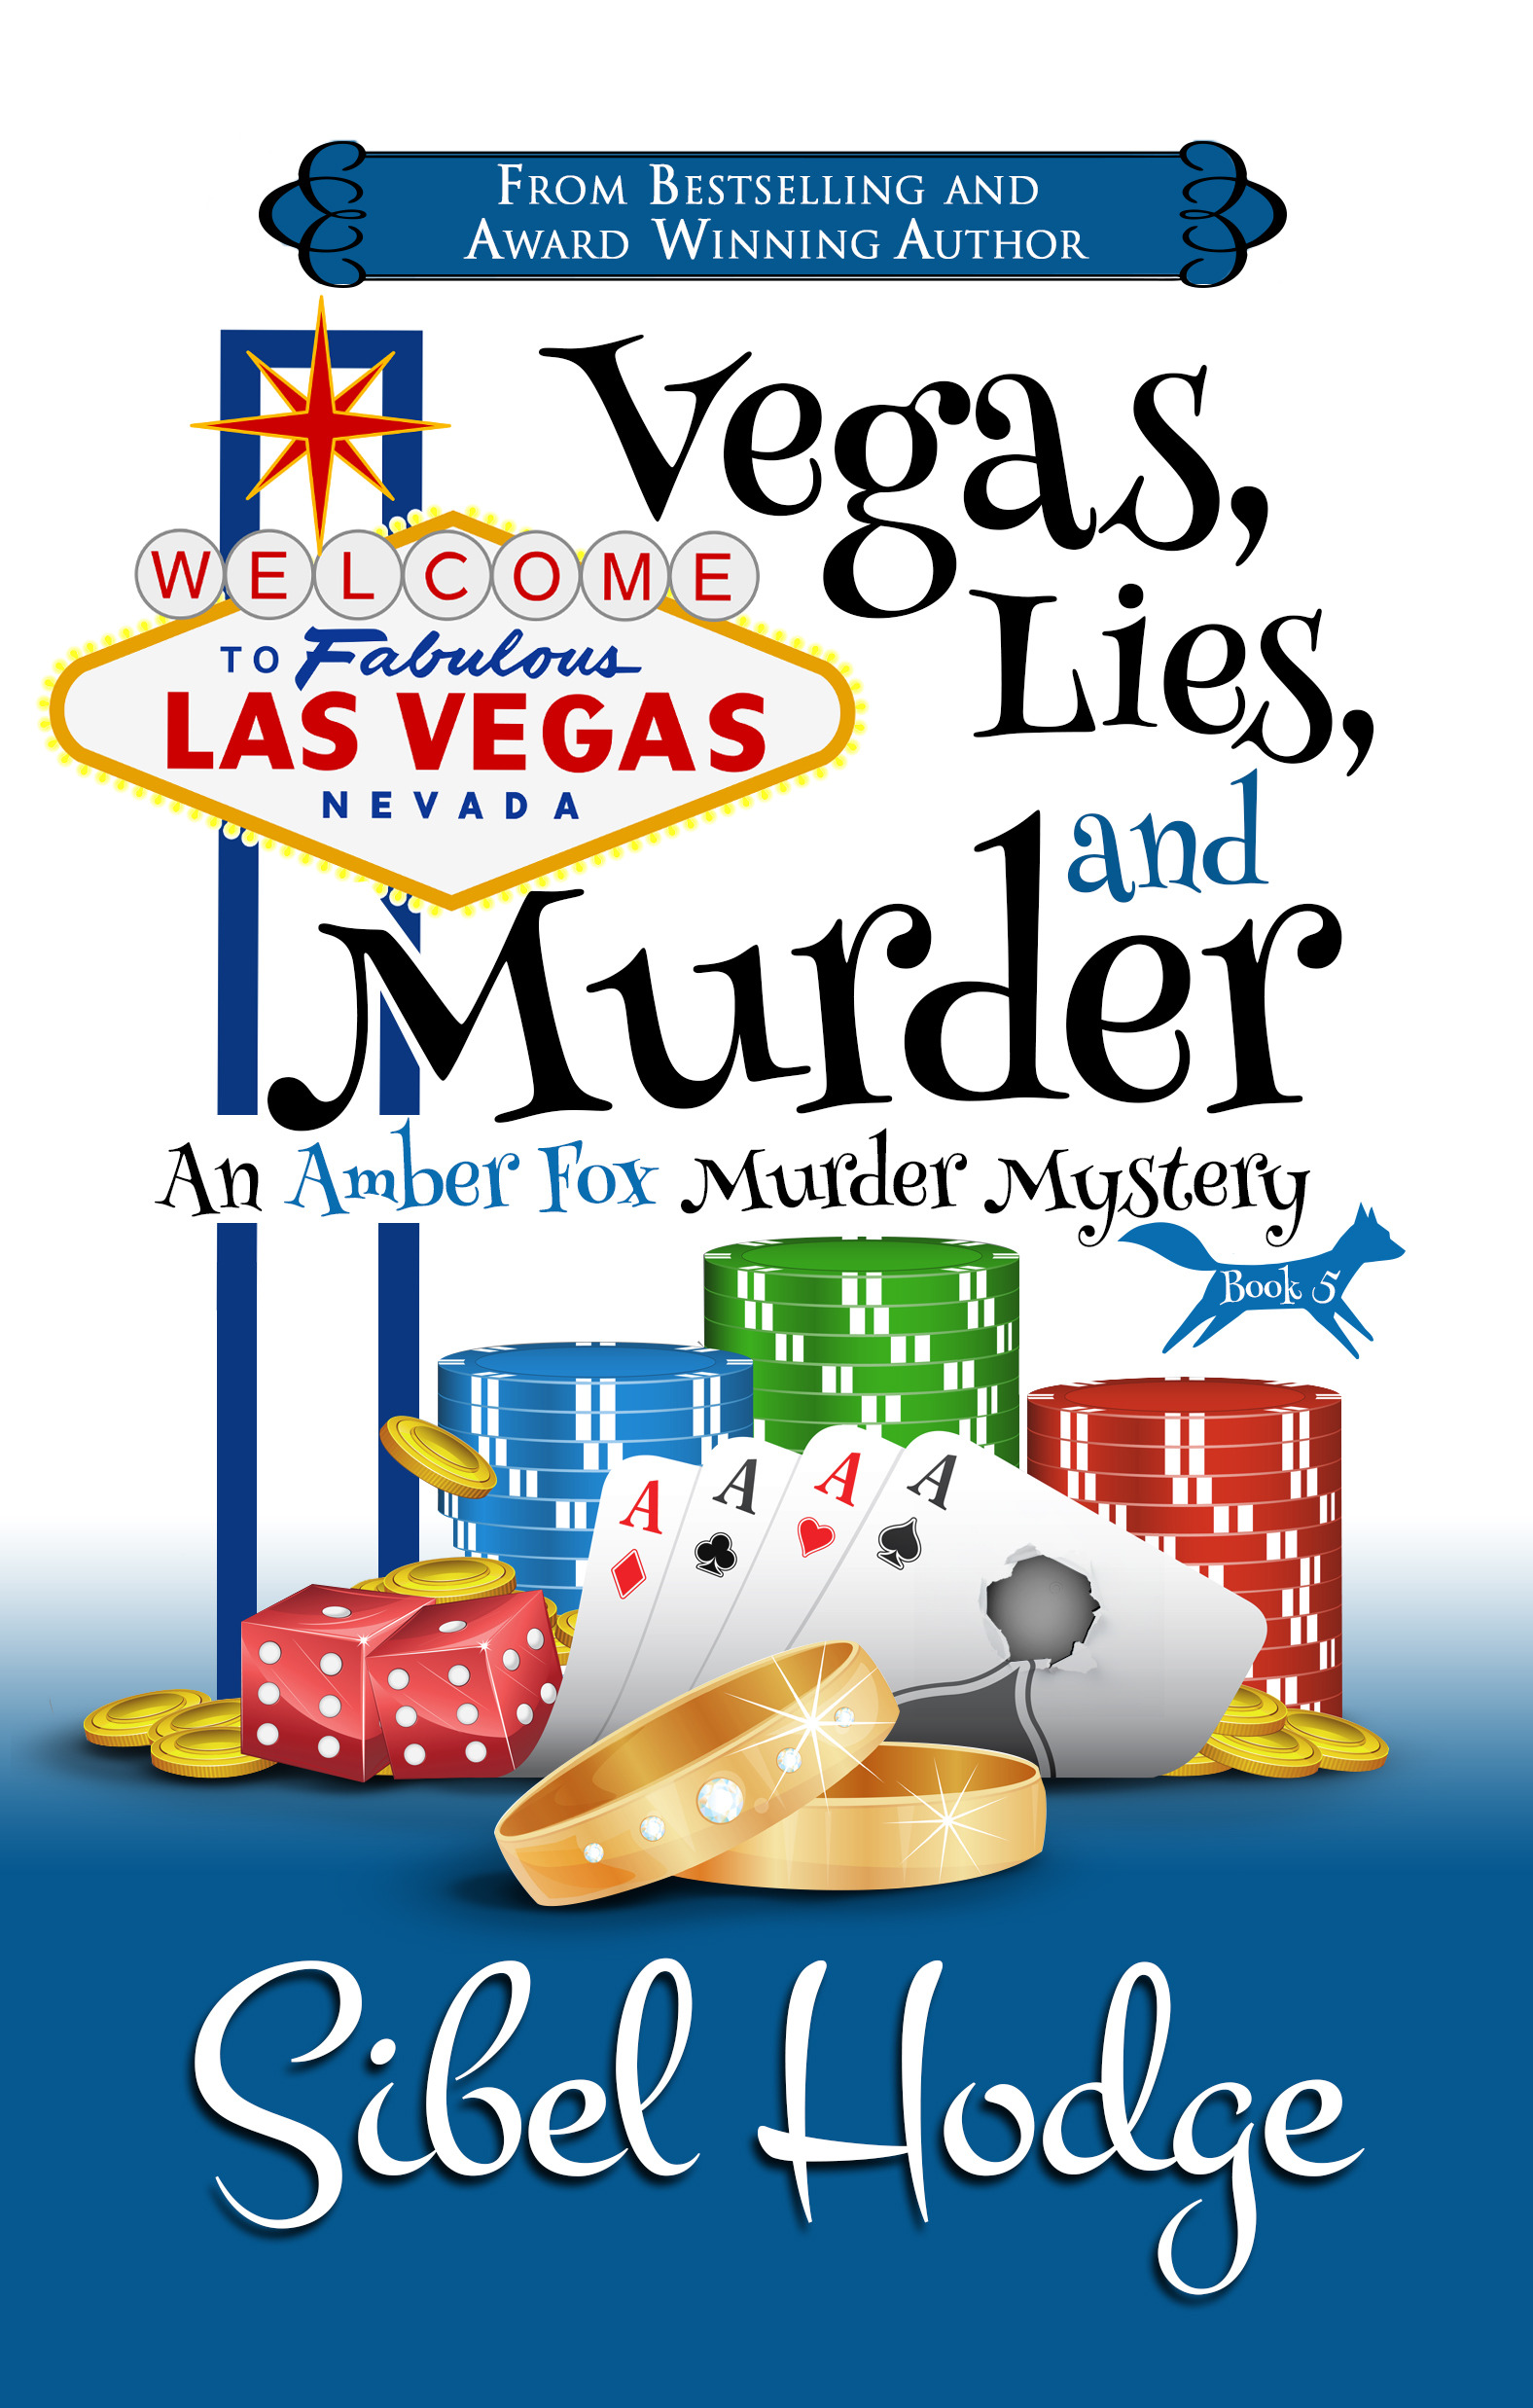 Vegas, Lies, and Murder final